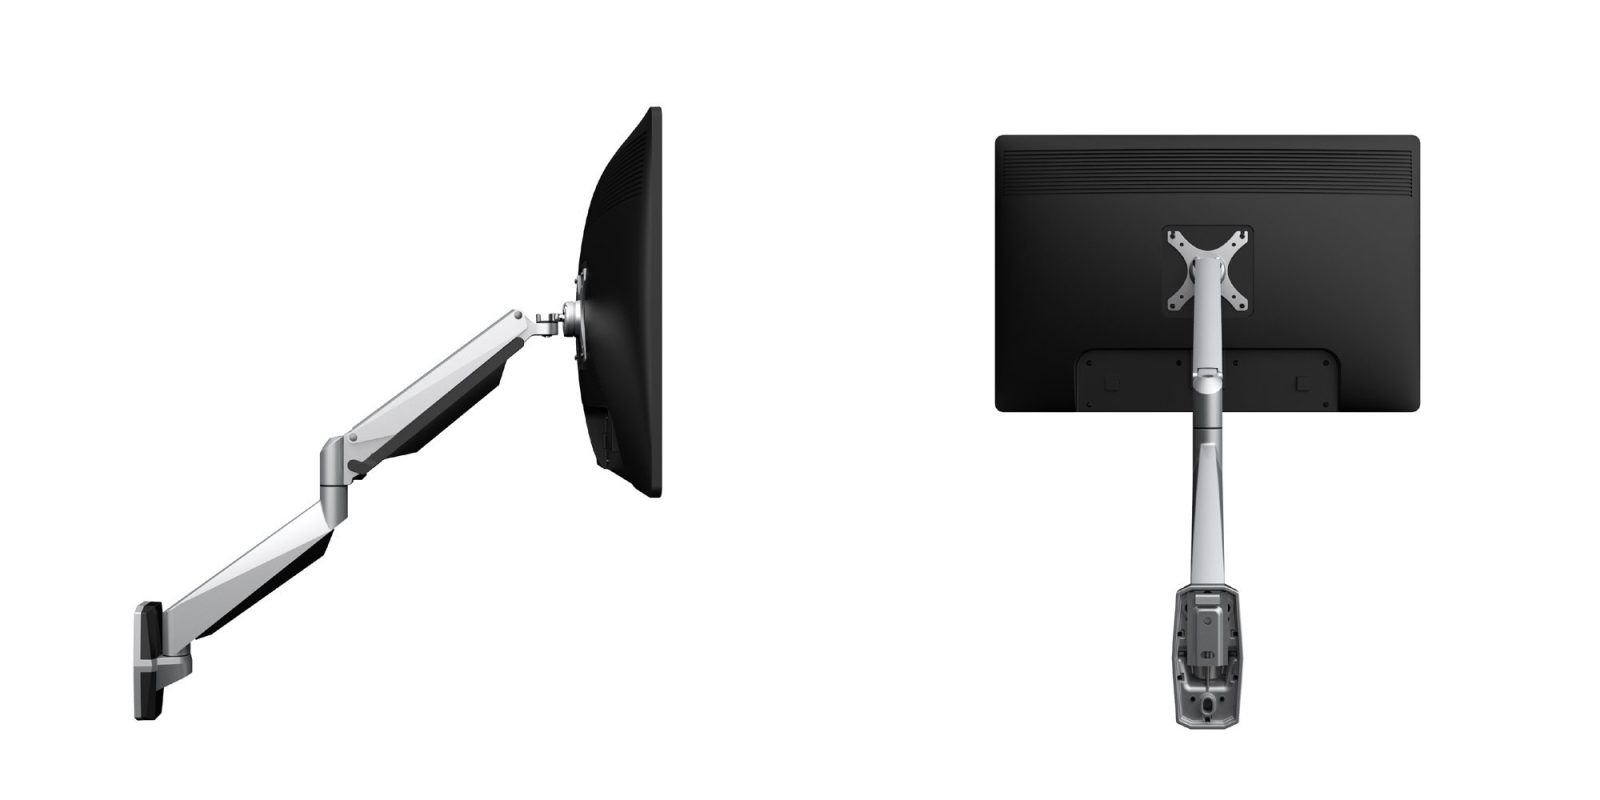 Aluminum and gas springs adorn Loctek's Monitor Wall Mount: $86.50 (Save $20)